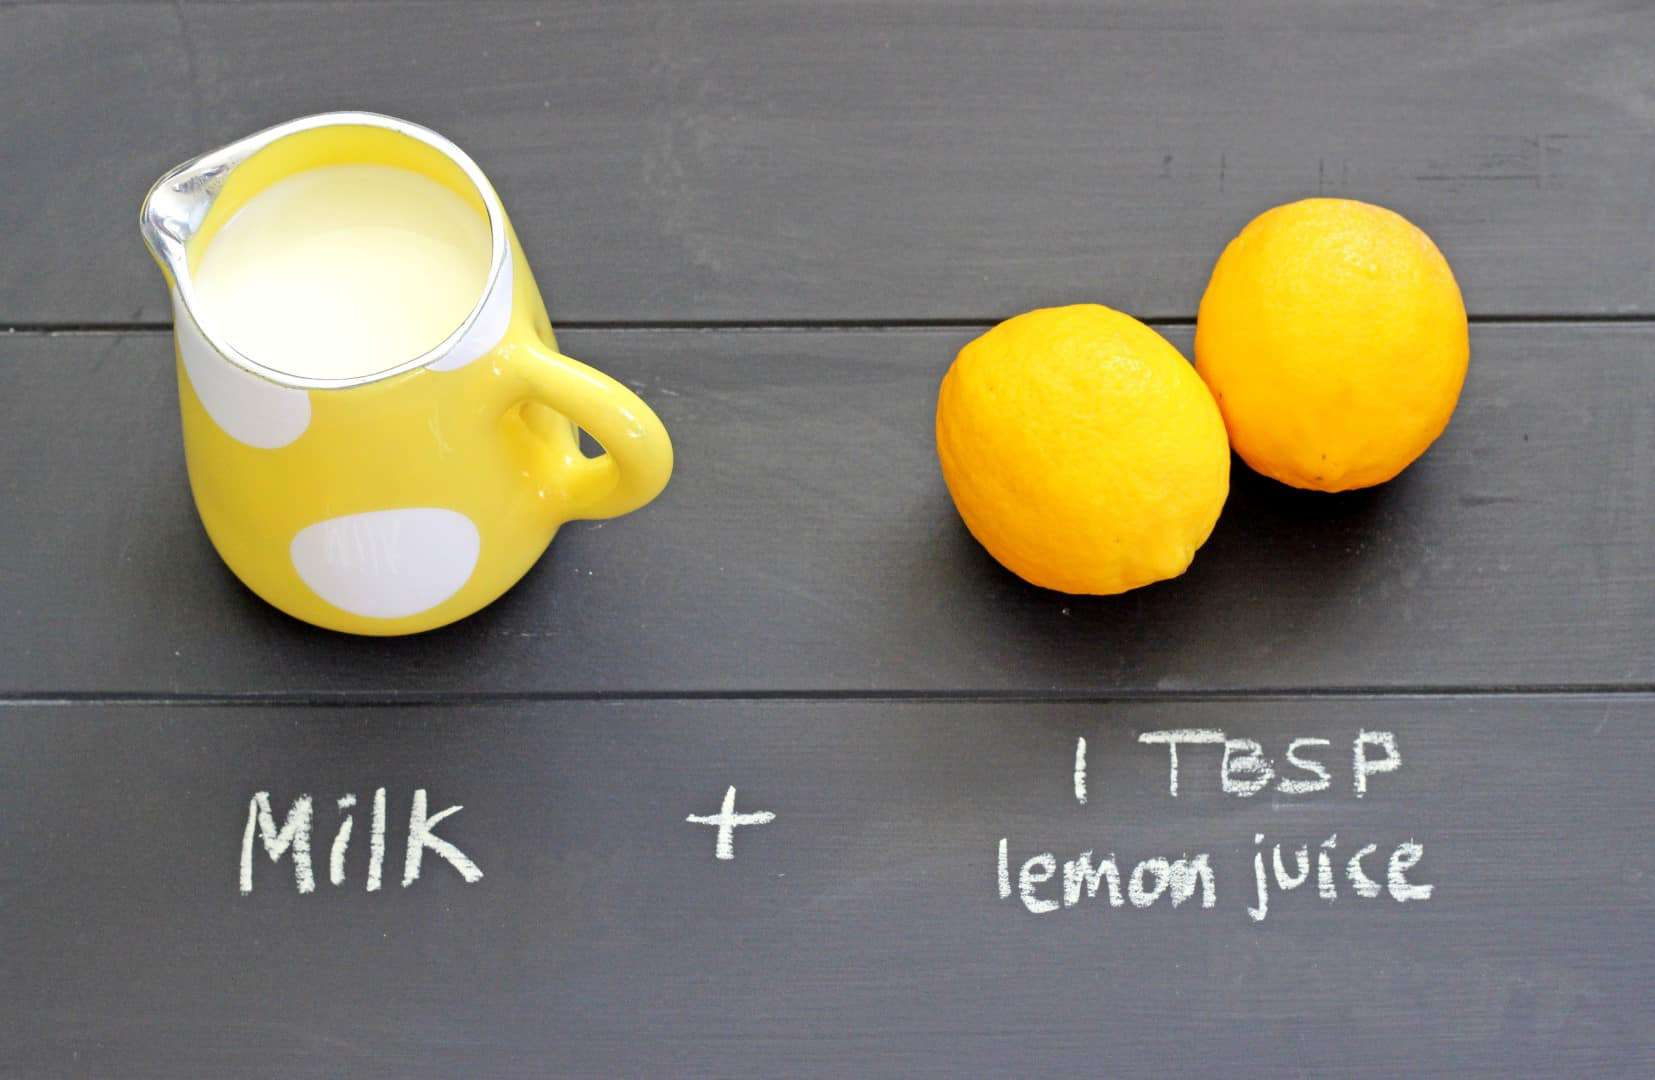 1 cup milk + 1 TBSP lemon juice = buttermilk!